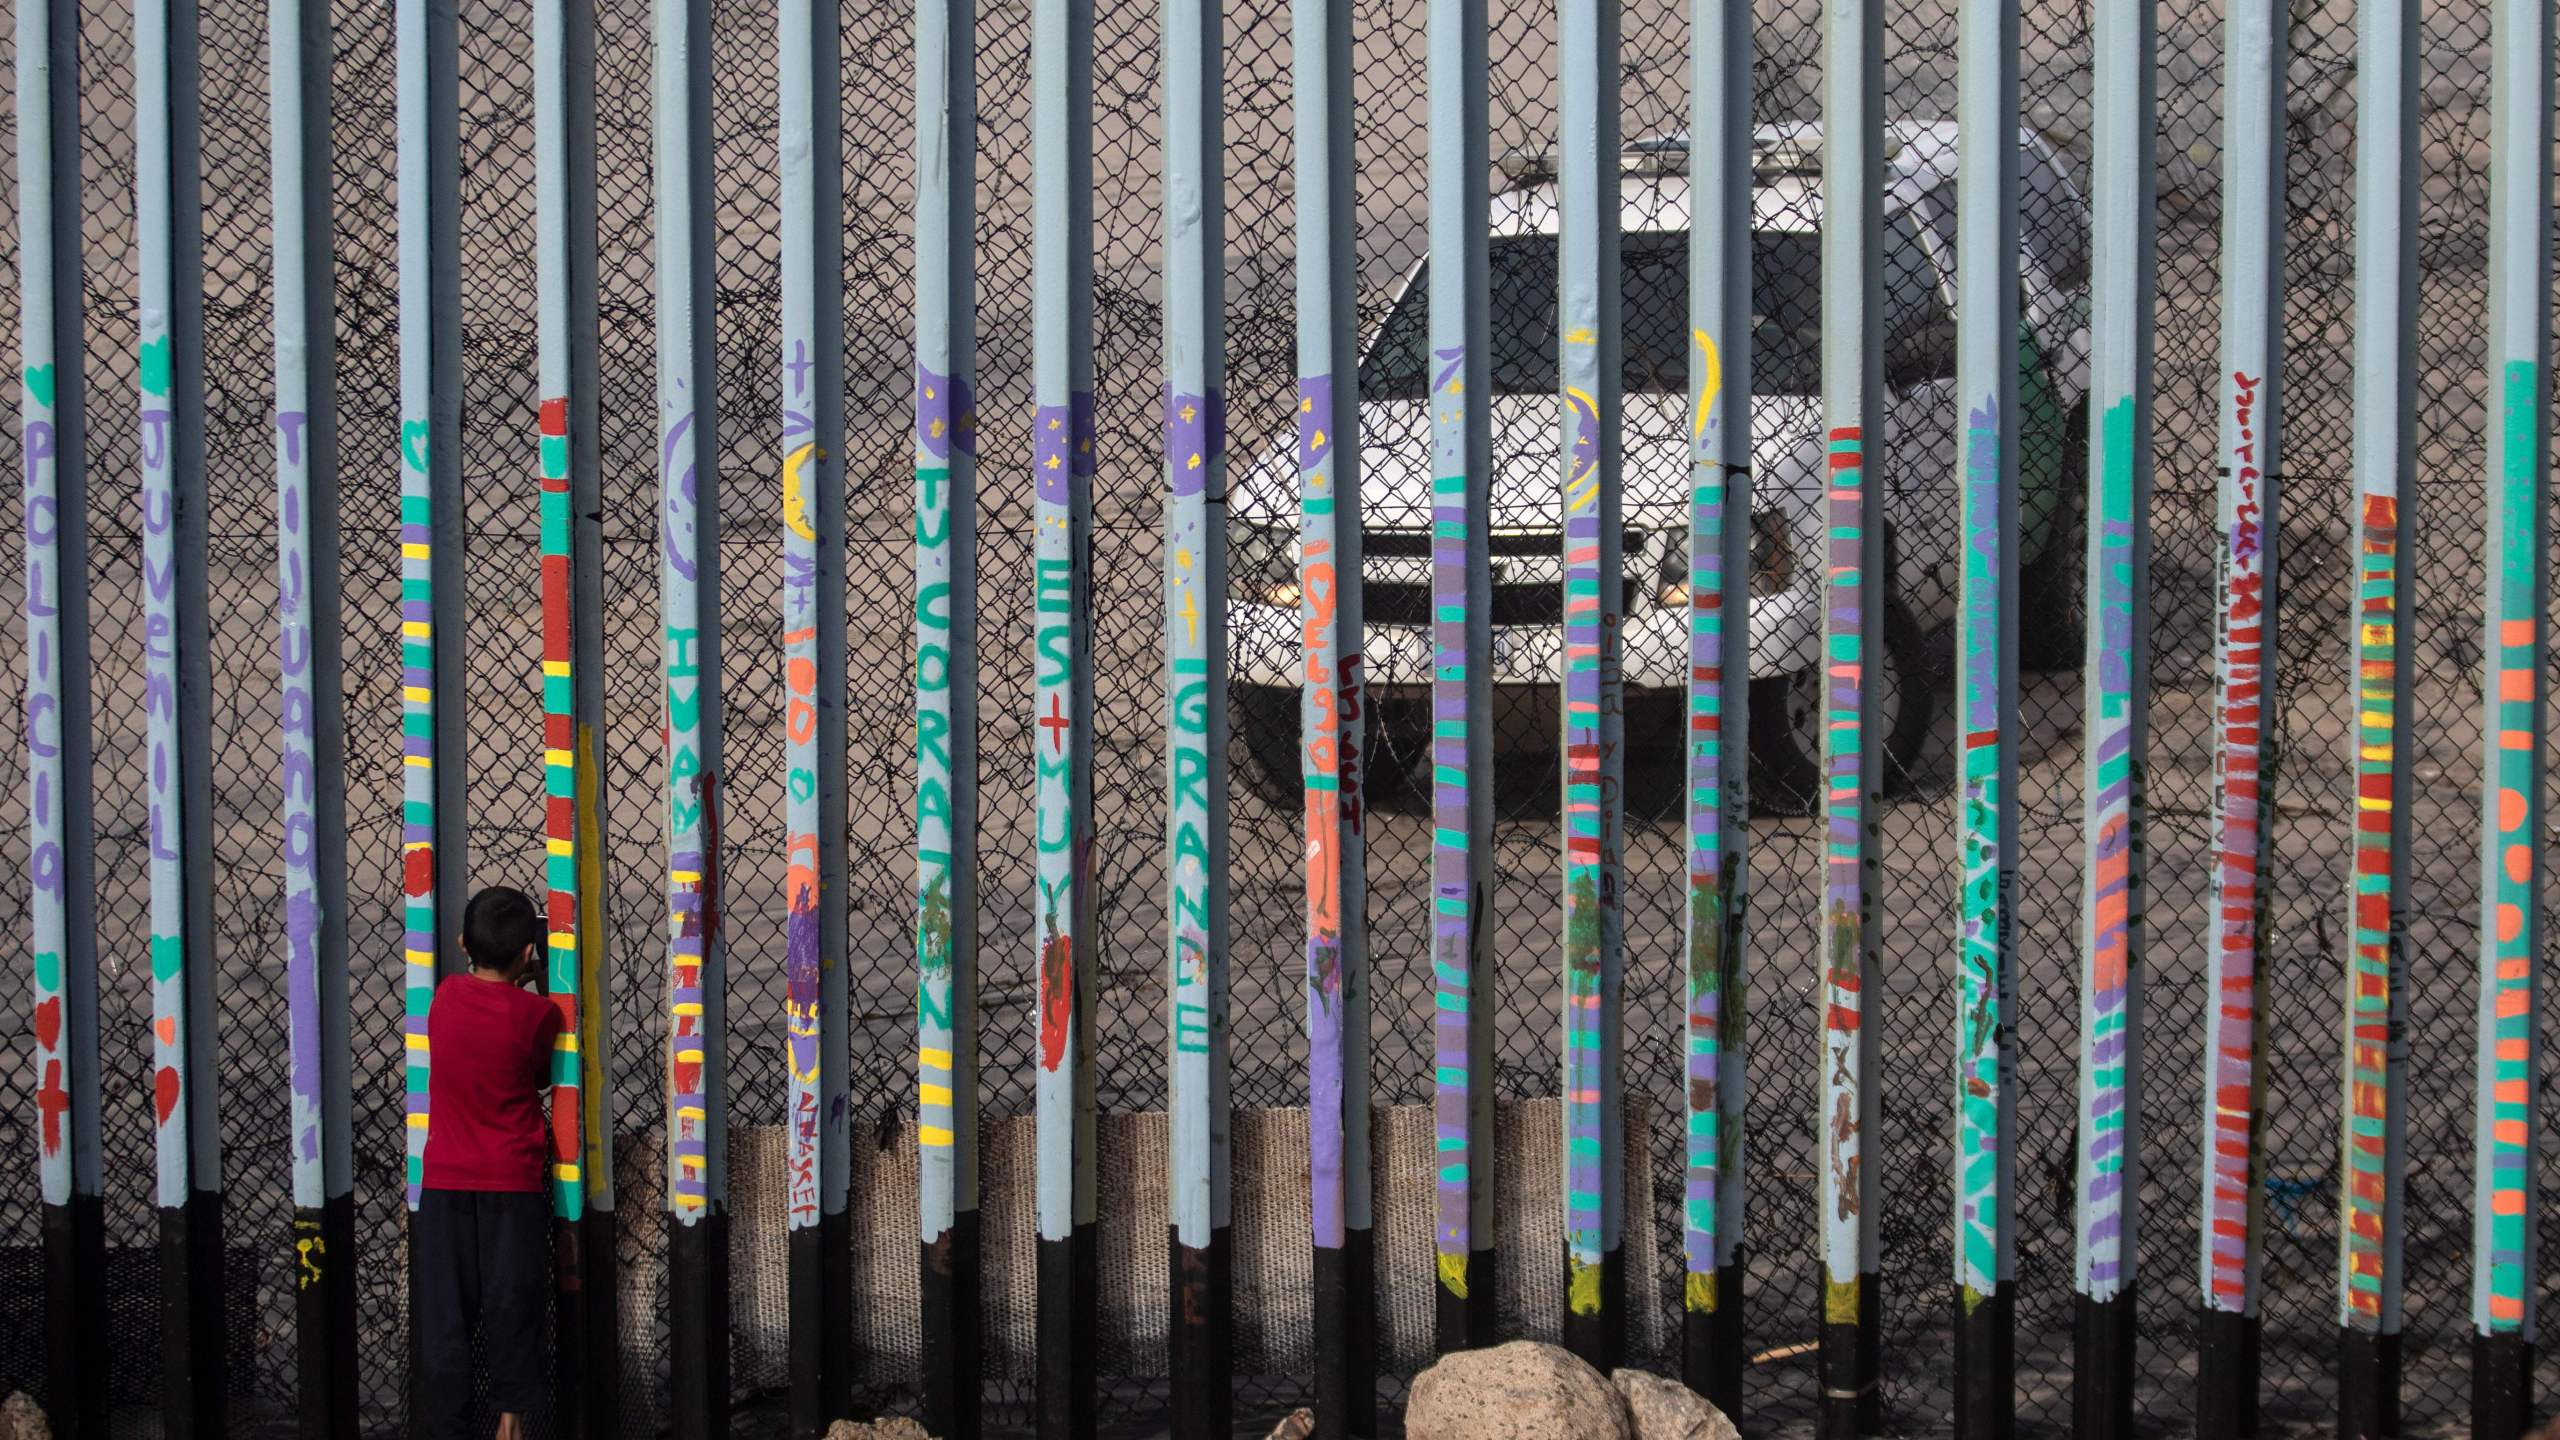 A boy looks at U.S. border patrol guards through the US-Mexico border fence, in Tijuana, in Baja California State, Mexico, on Jan. 18, 2019. (Credit: GUILLERMO ARIAS/AFP/Getty Images)